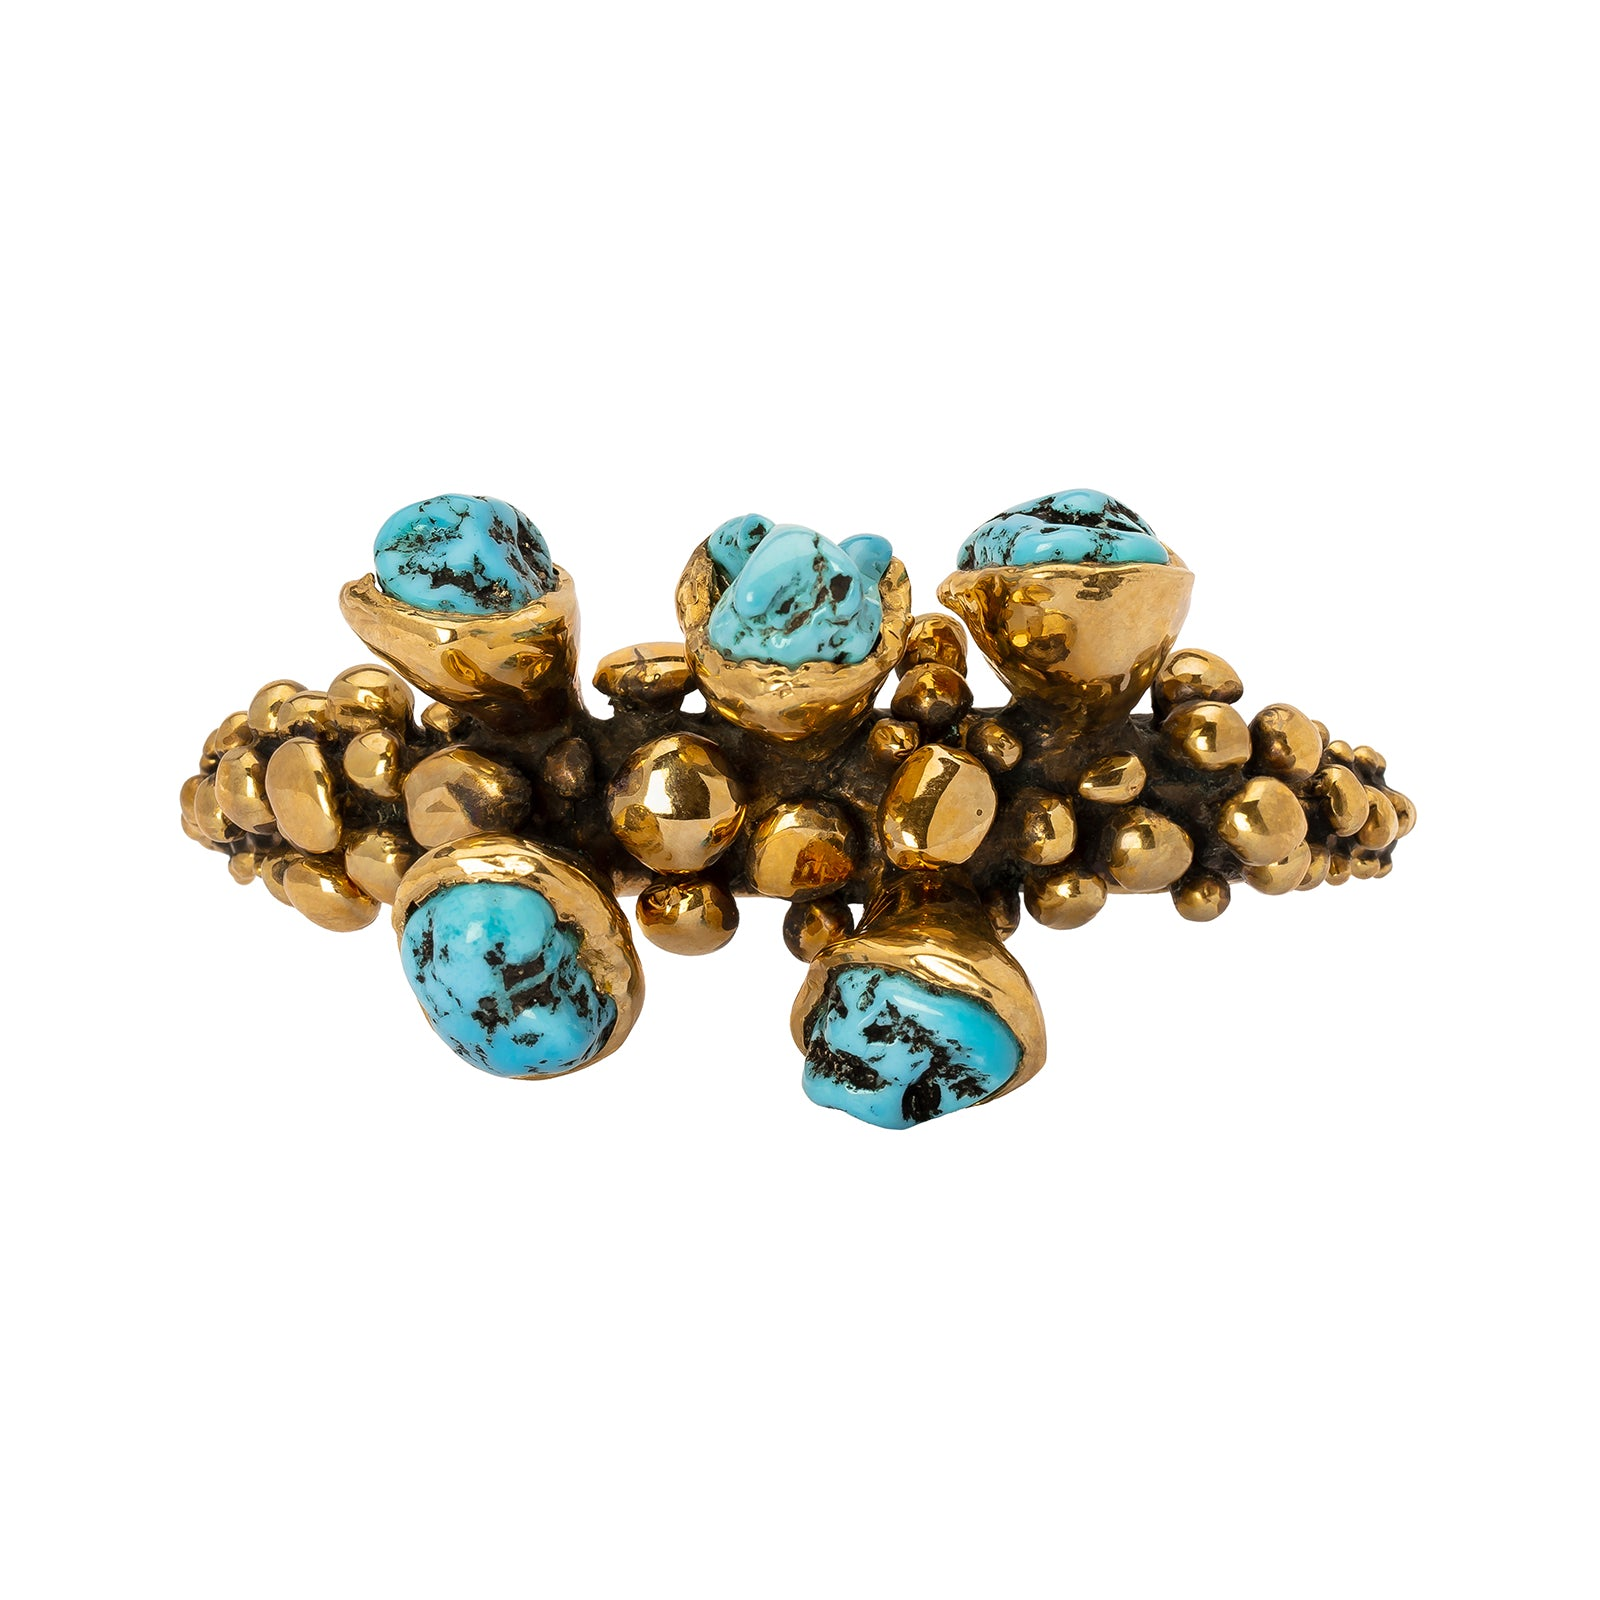 Lisa Eisner Jewelry No. 8 Mine Turquoise Nugget Bangle - Bracelets - Broken English Jewelry